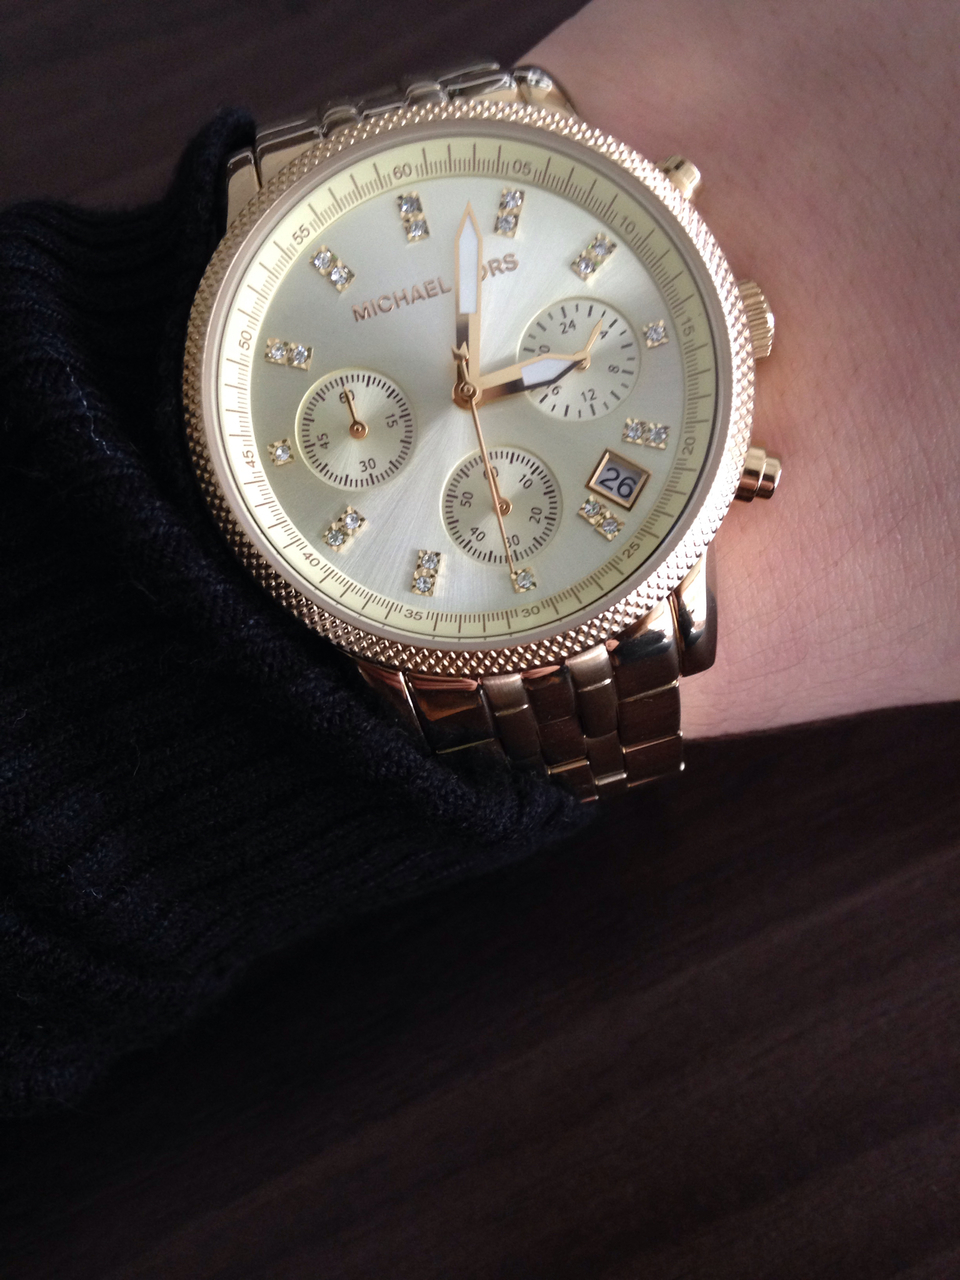 inlove, michael, and watch image